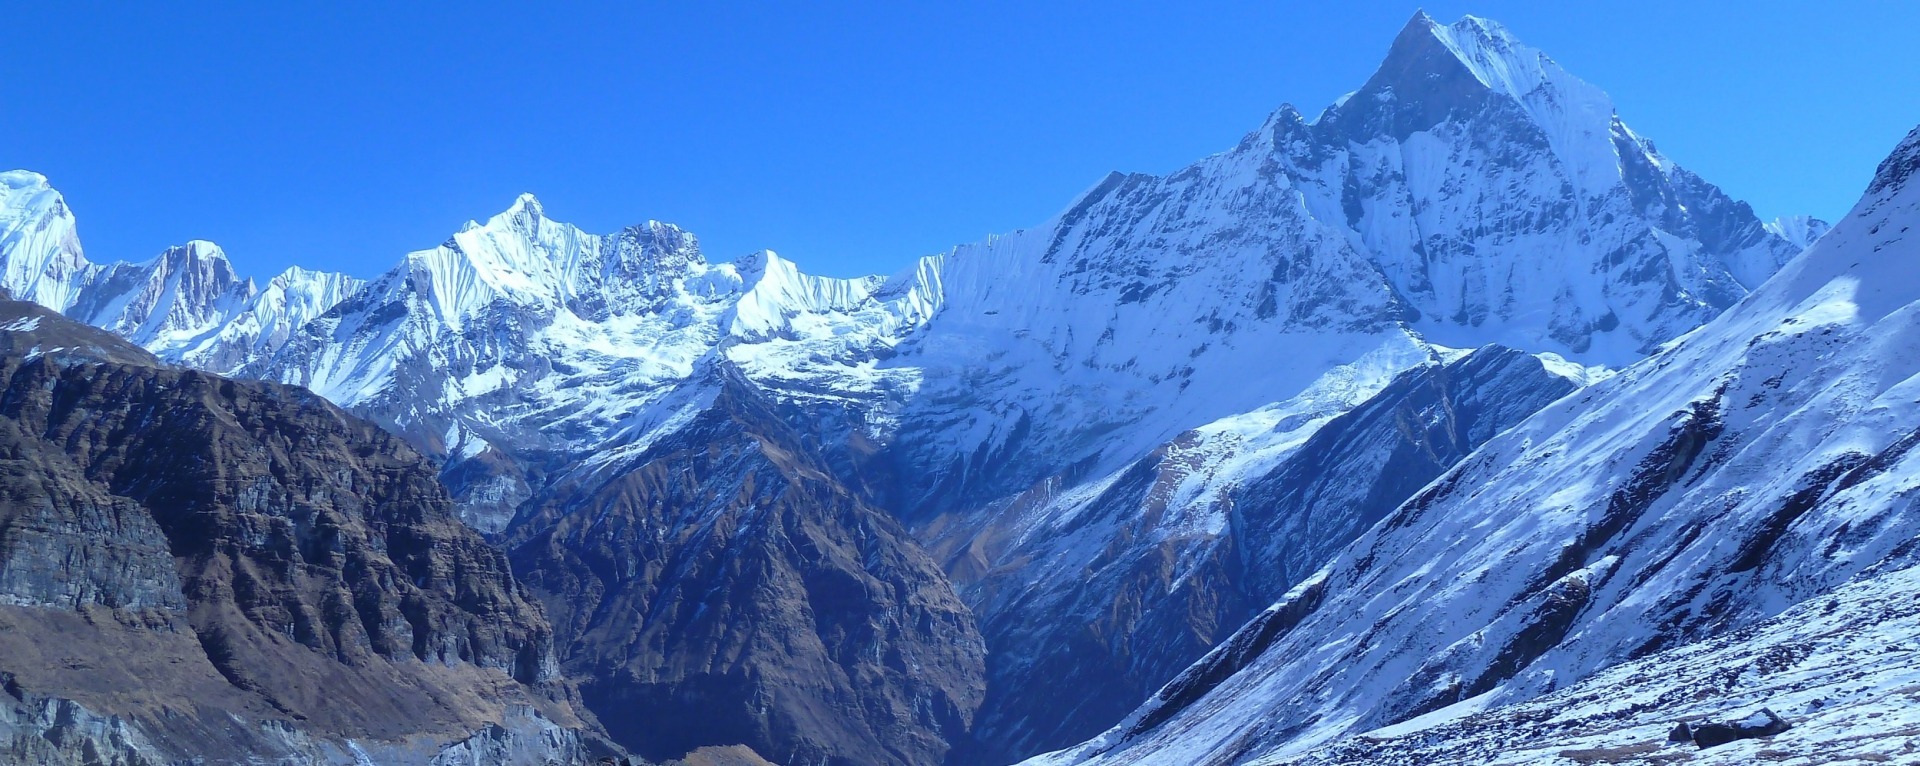 The view of Machhapuchre mountain from ABC(4130m), Nepal